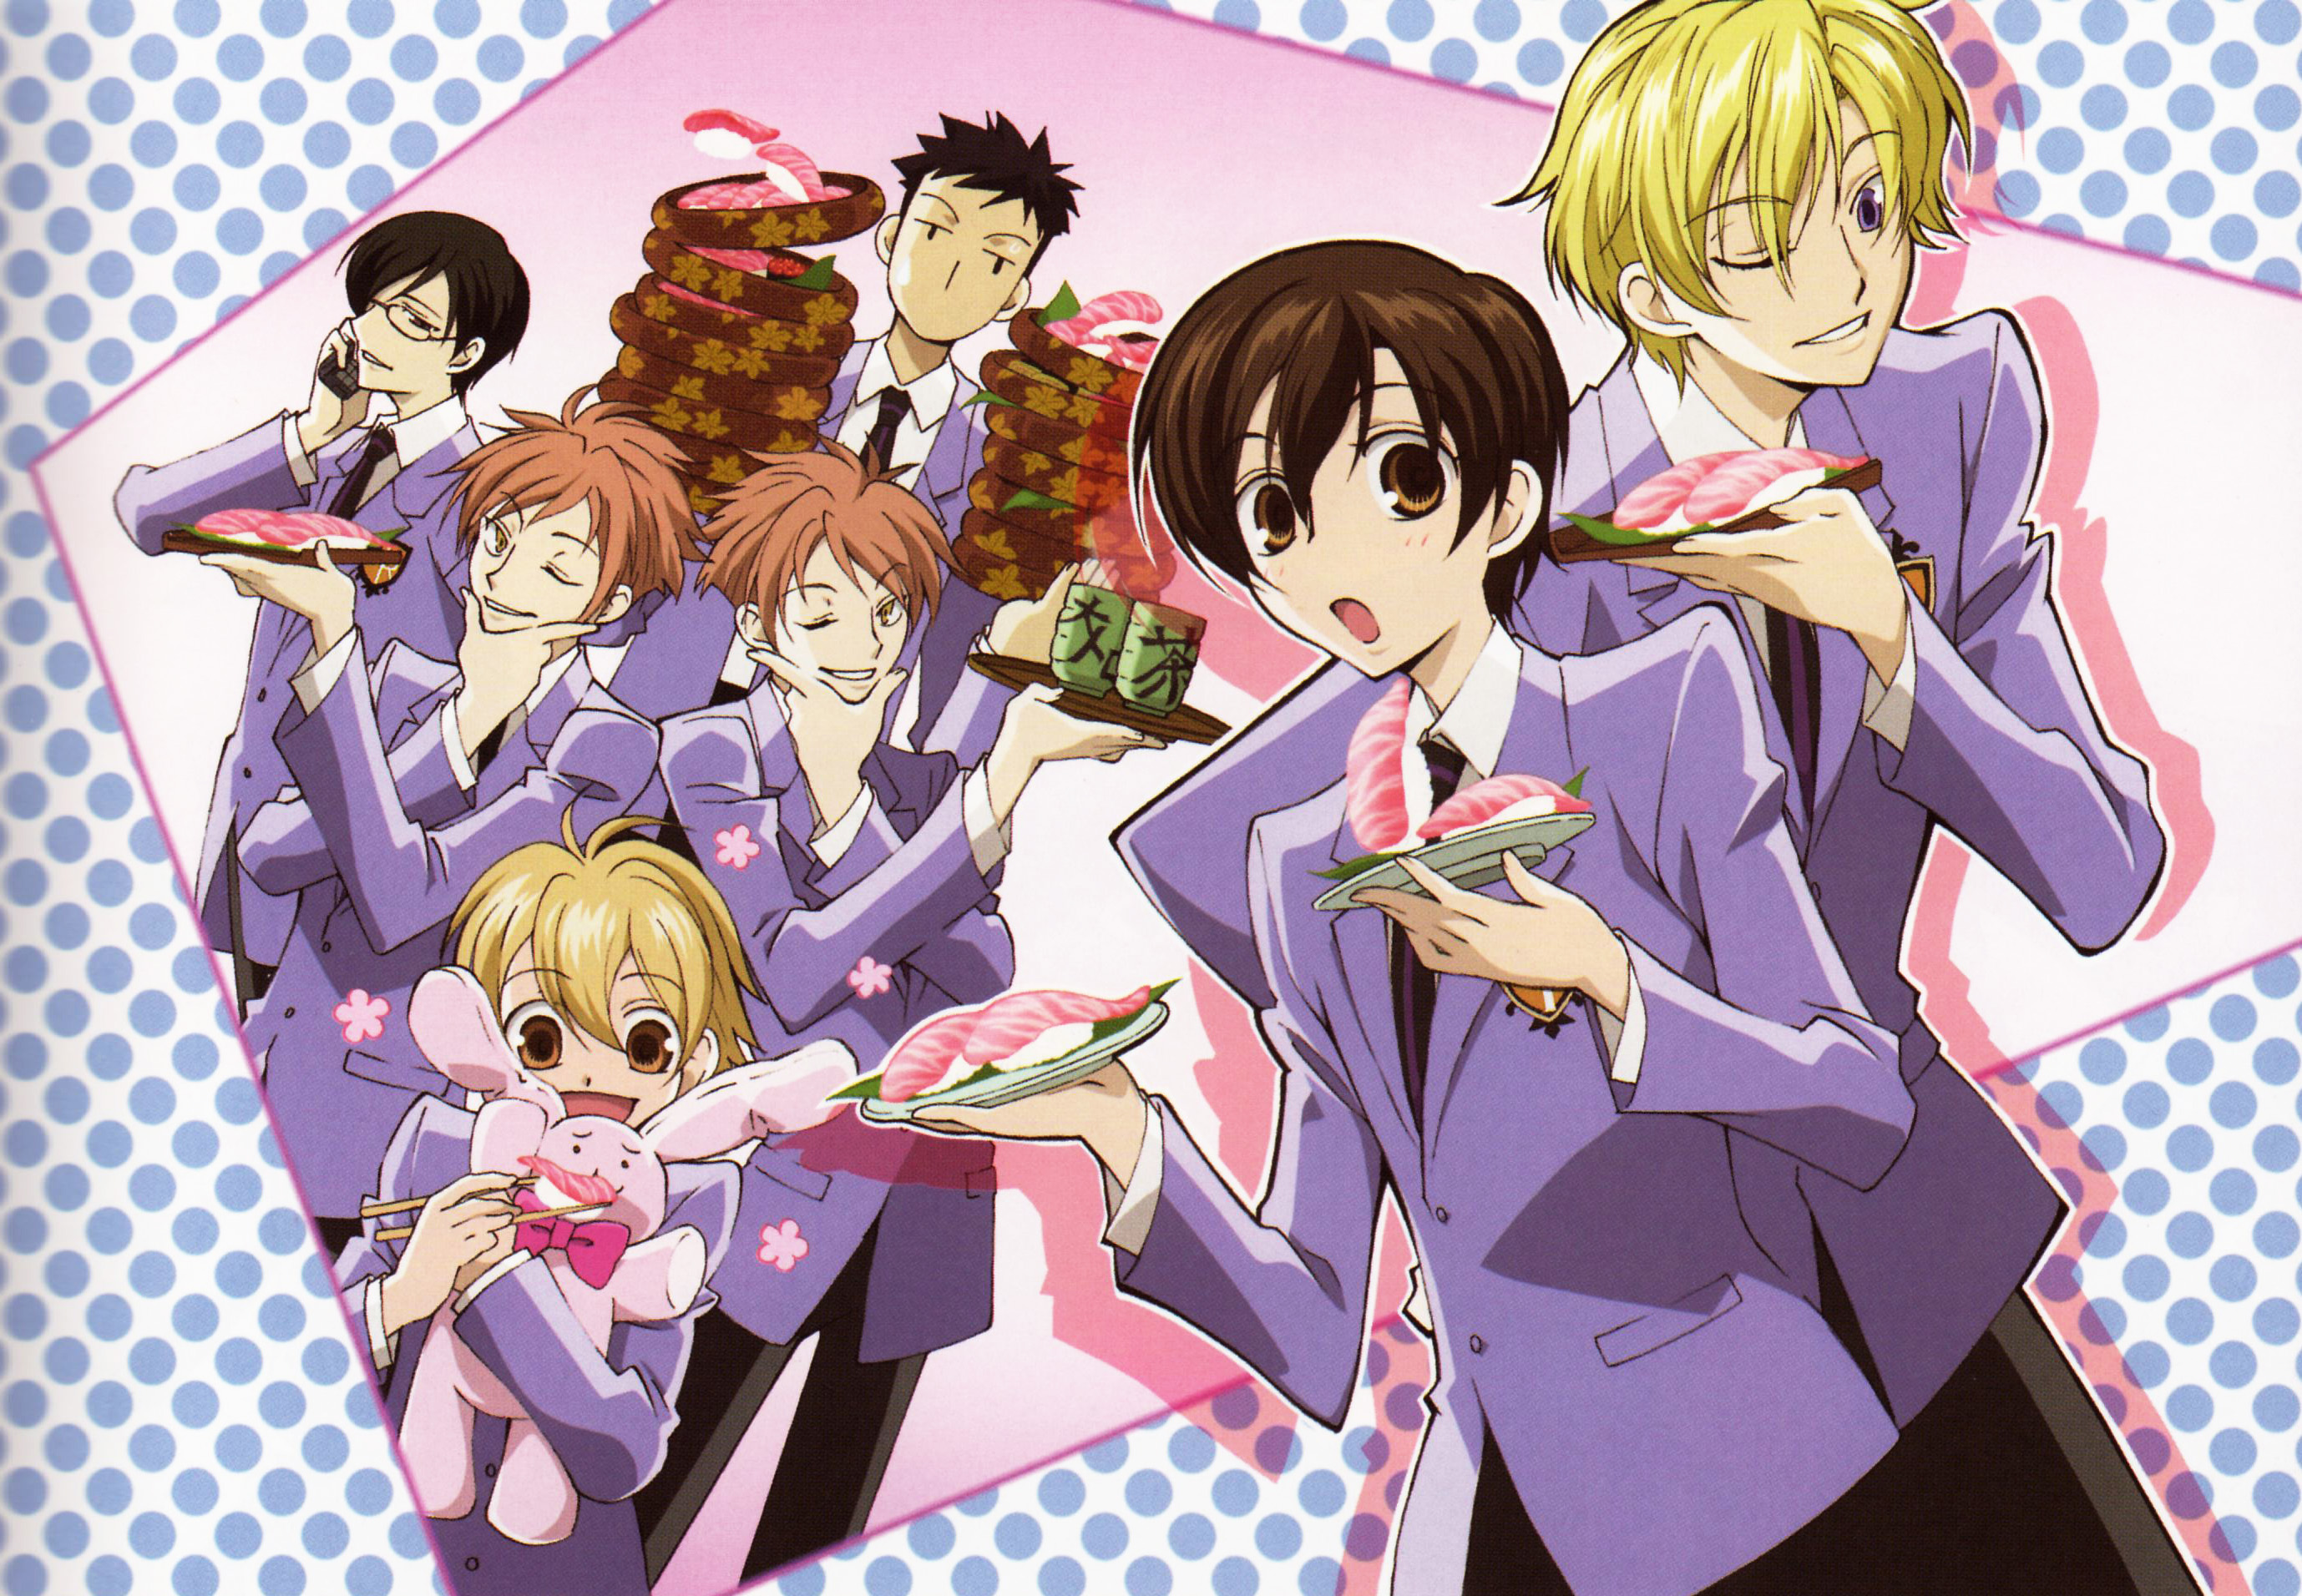 ouran high school host club, gay, queer, transgender